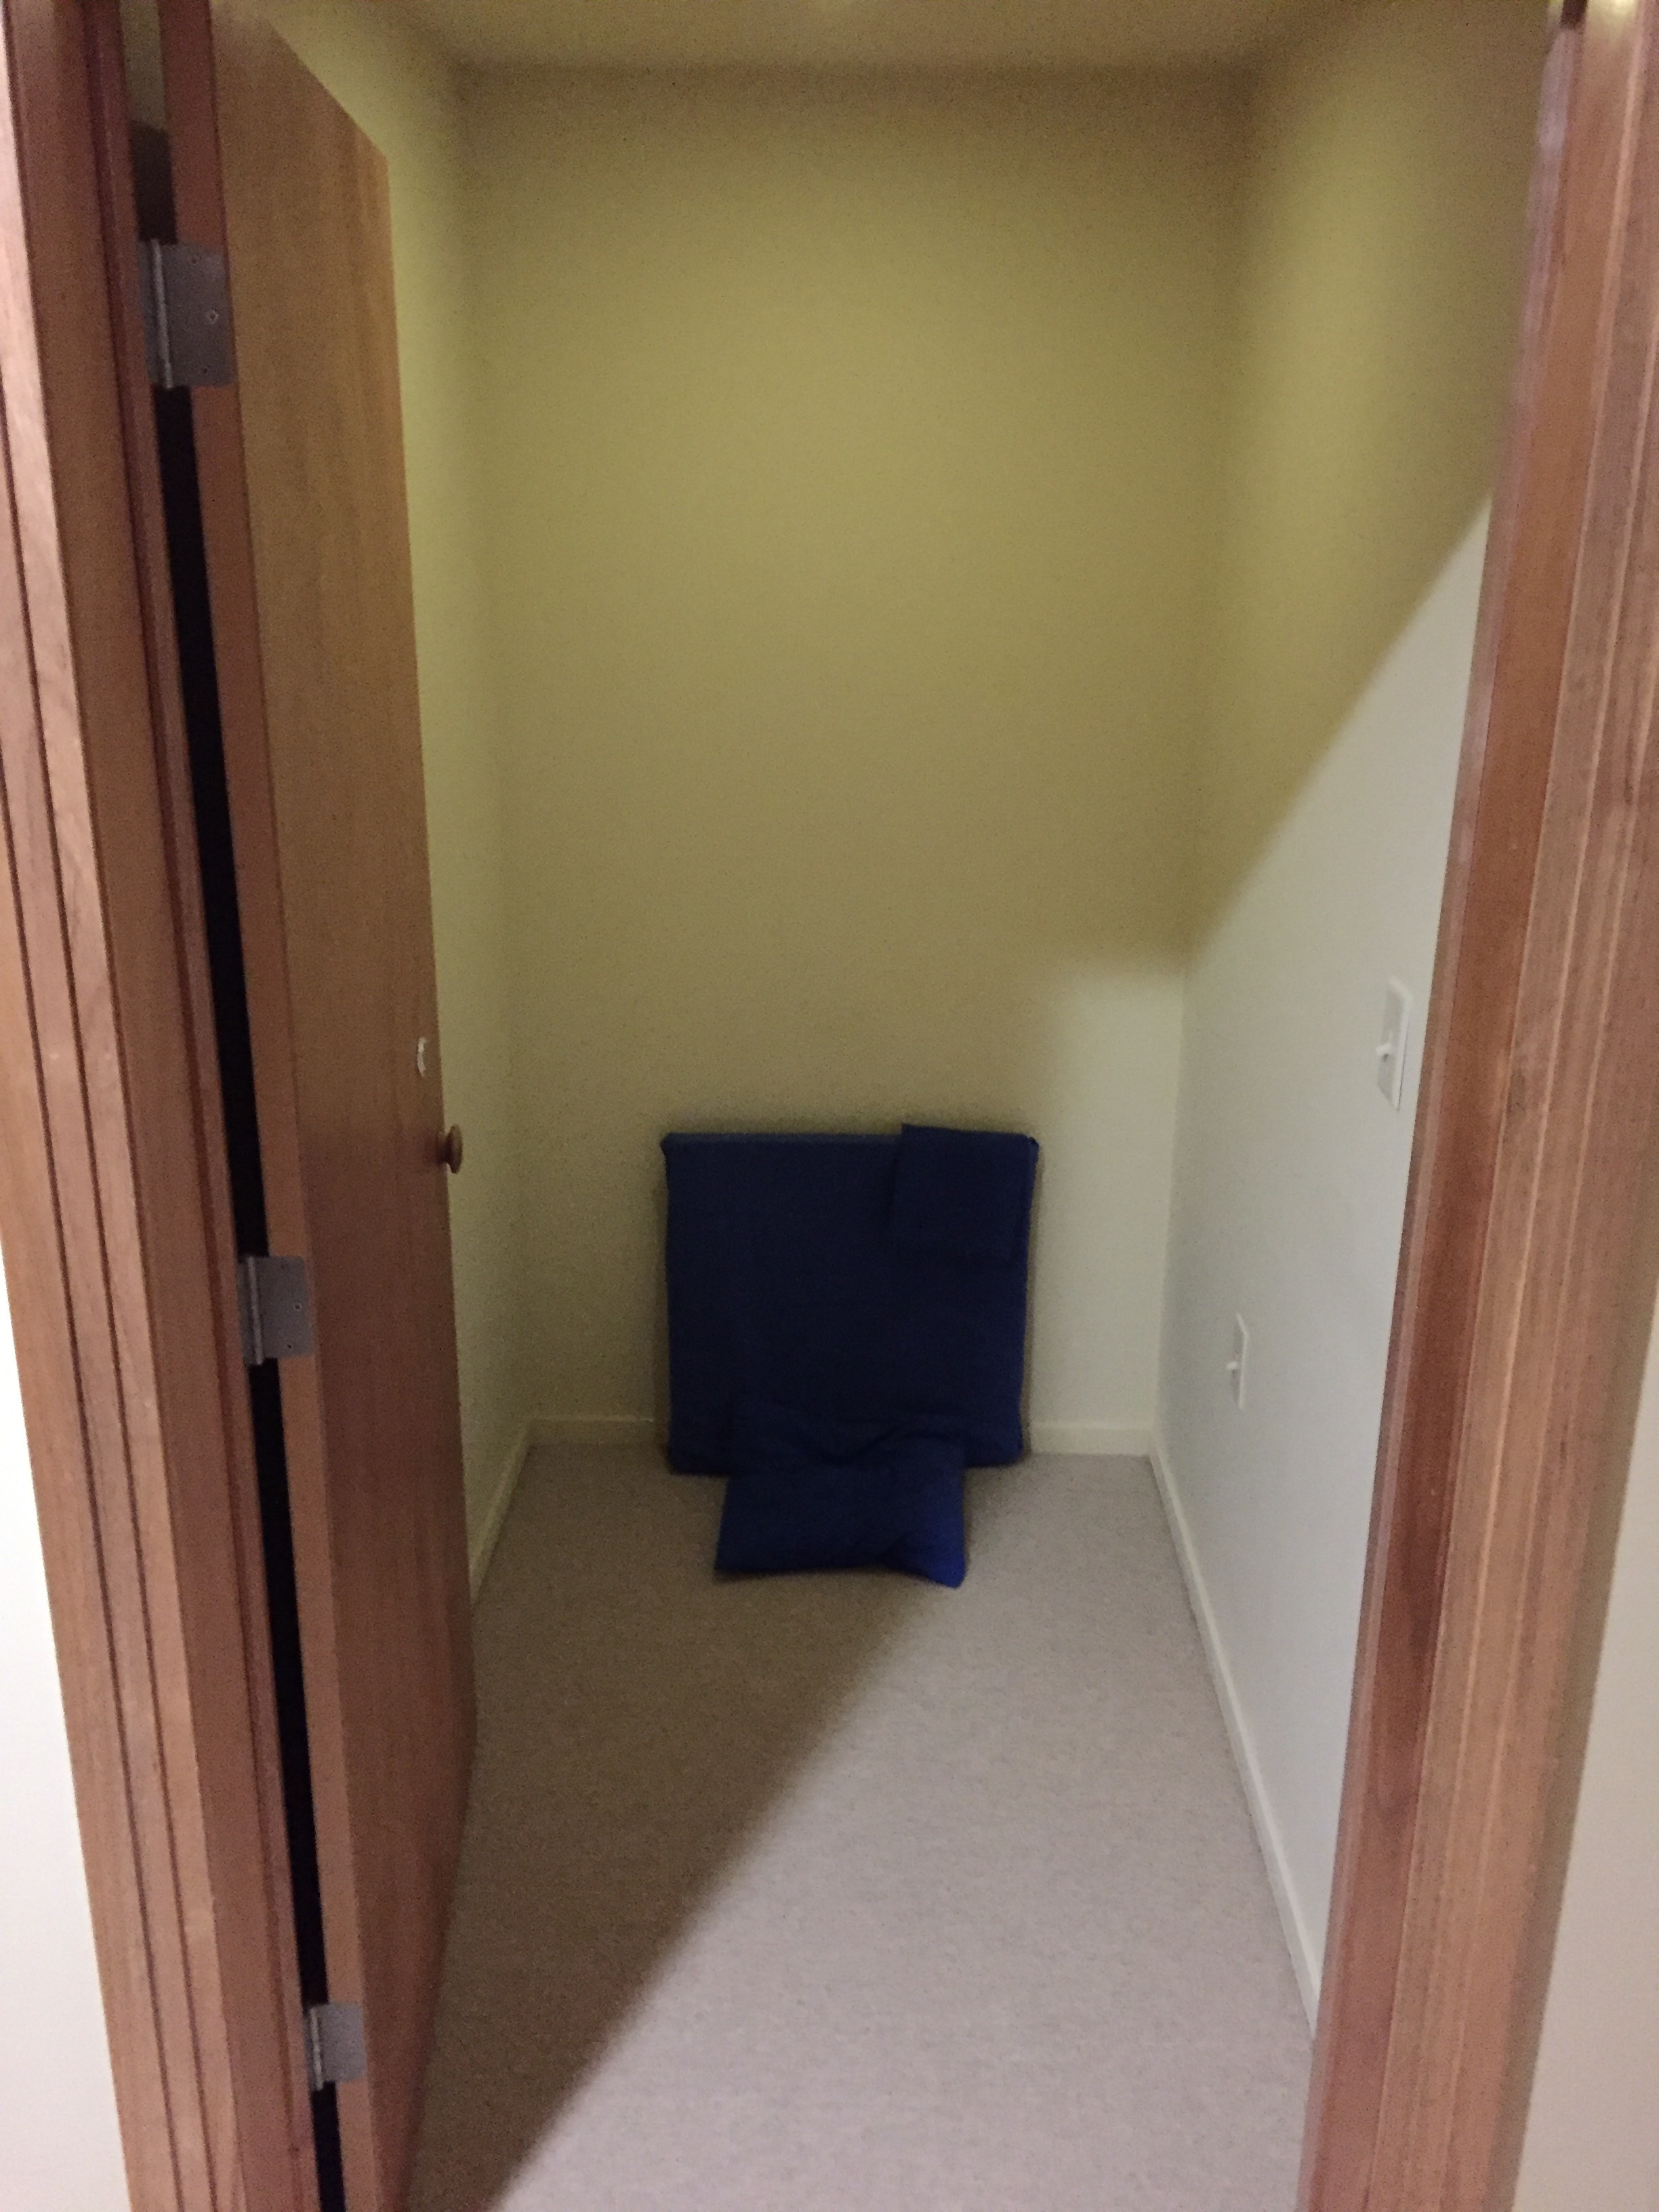 The cell for the meditation